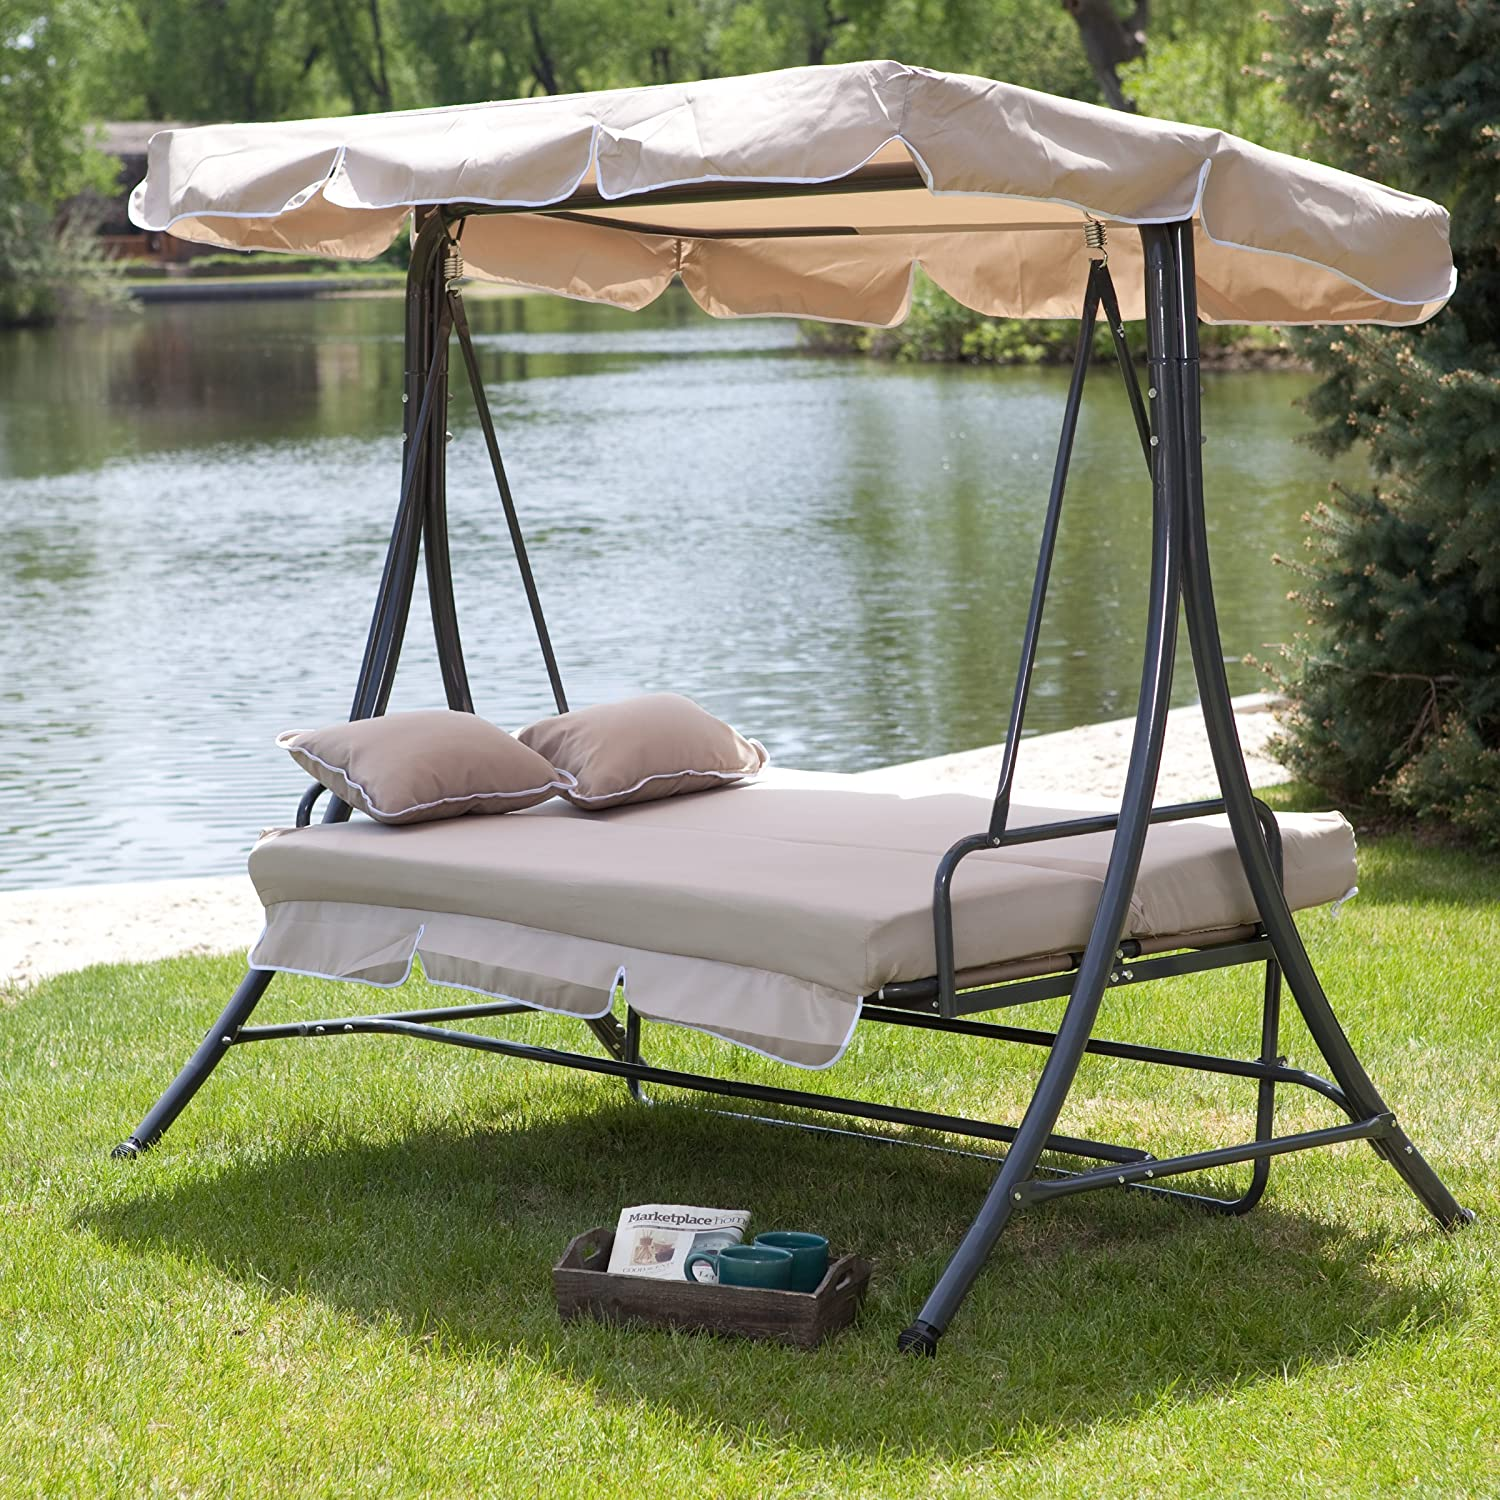 Amazon.com  Canopy Patio Porch 3 Person Swing Lounger Chair and Bed - Cappuccino  Garden u0026 Outdoor : outdoor canopy swing - memphite.com